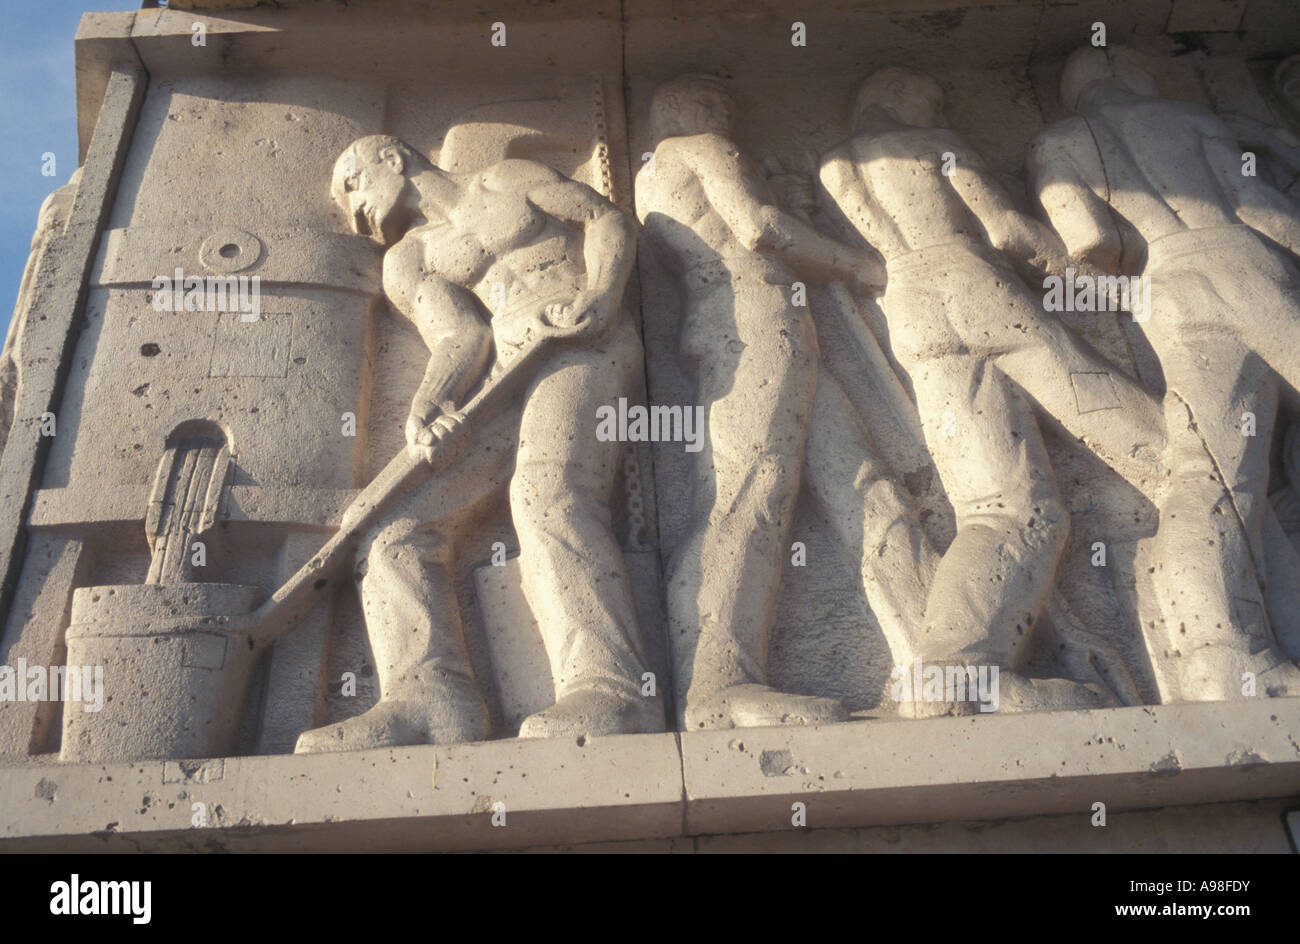 Relief of workers at steel foundry.  Soviet Realism art is on side of Budapest apartment building. - Stock Image